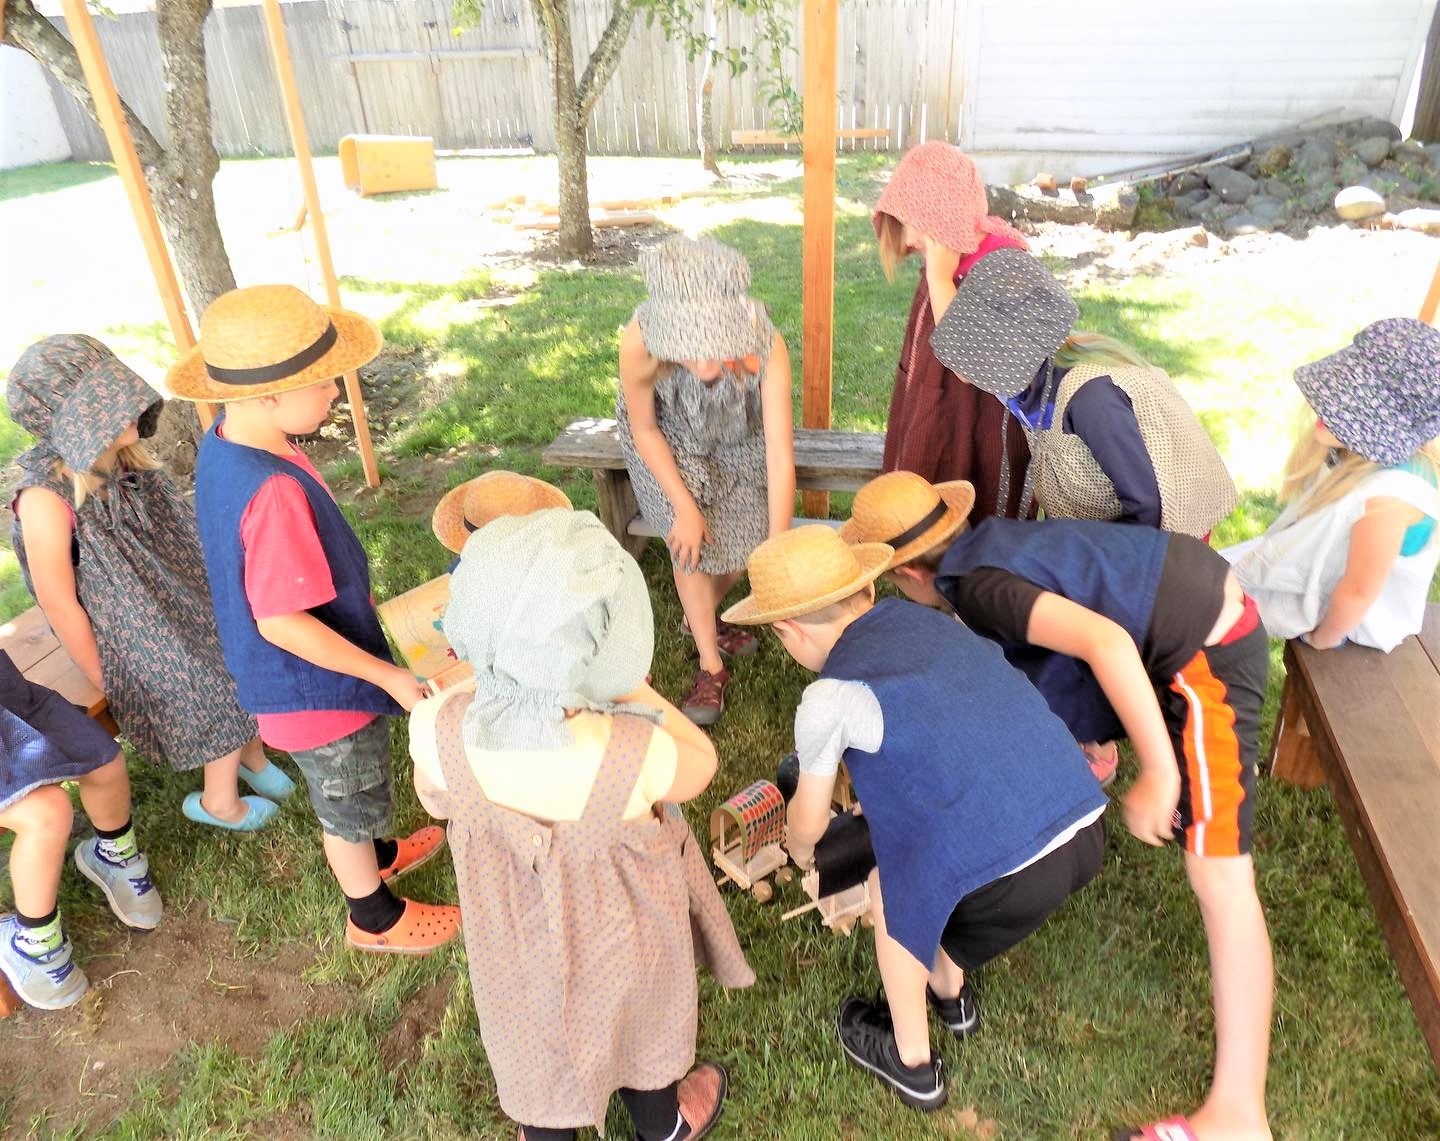 Photo of kids in costume playing